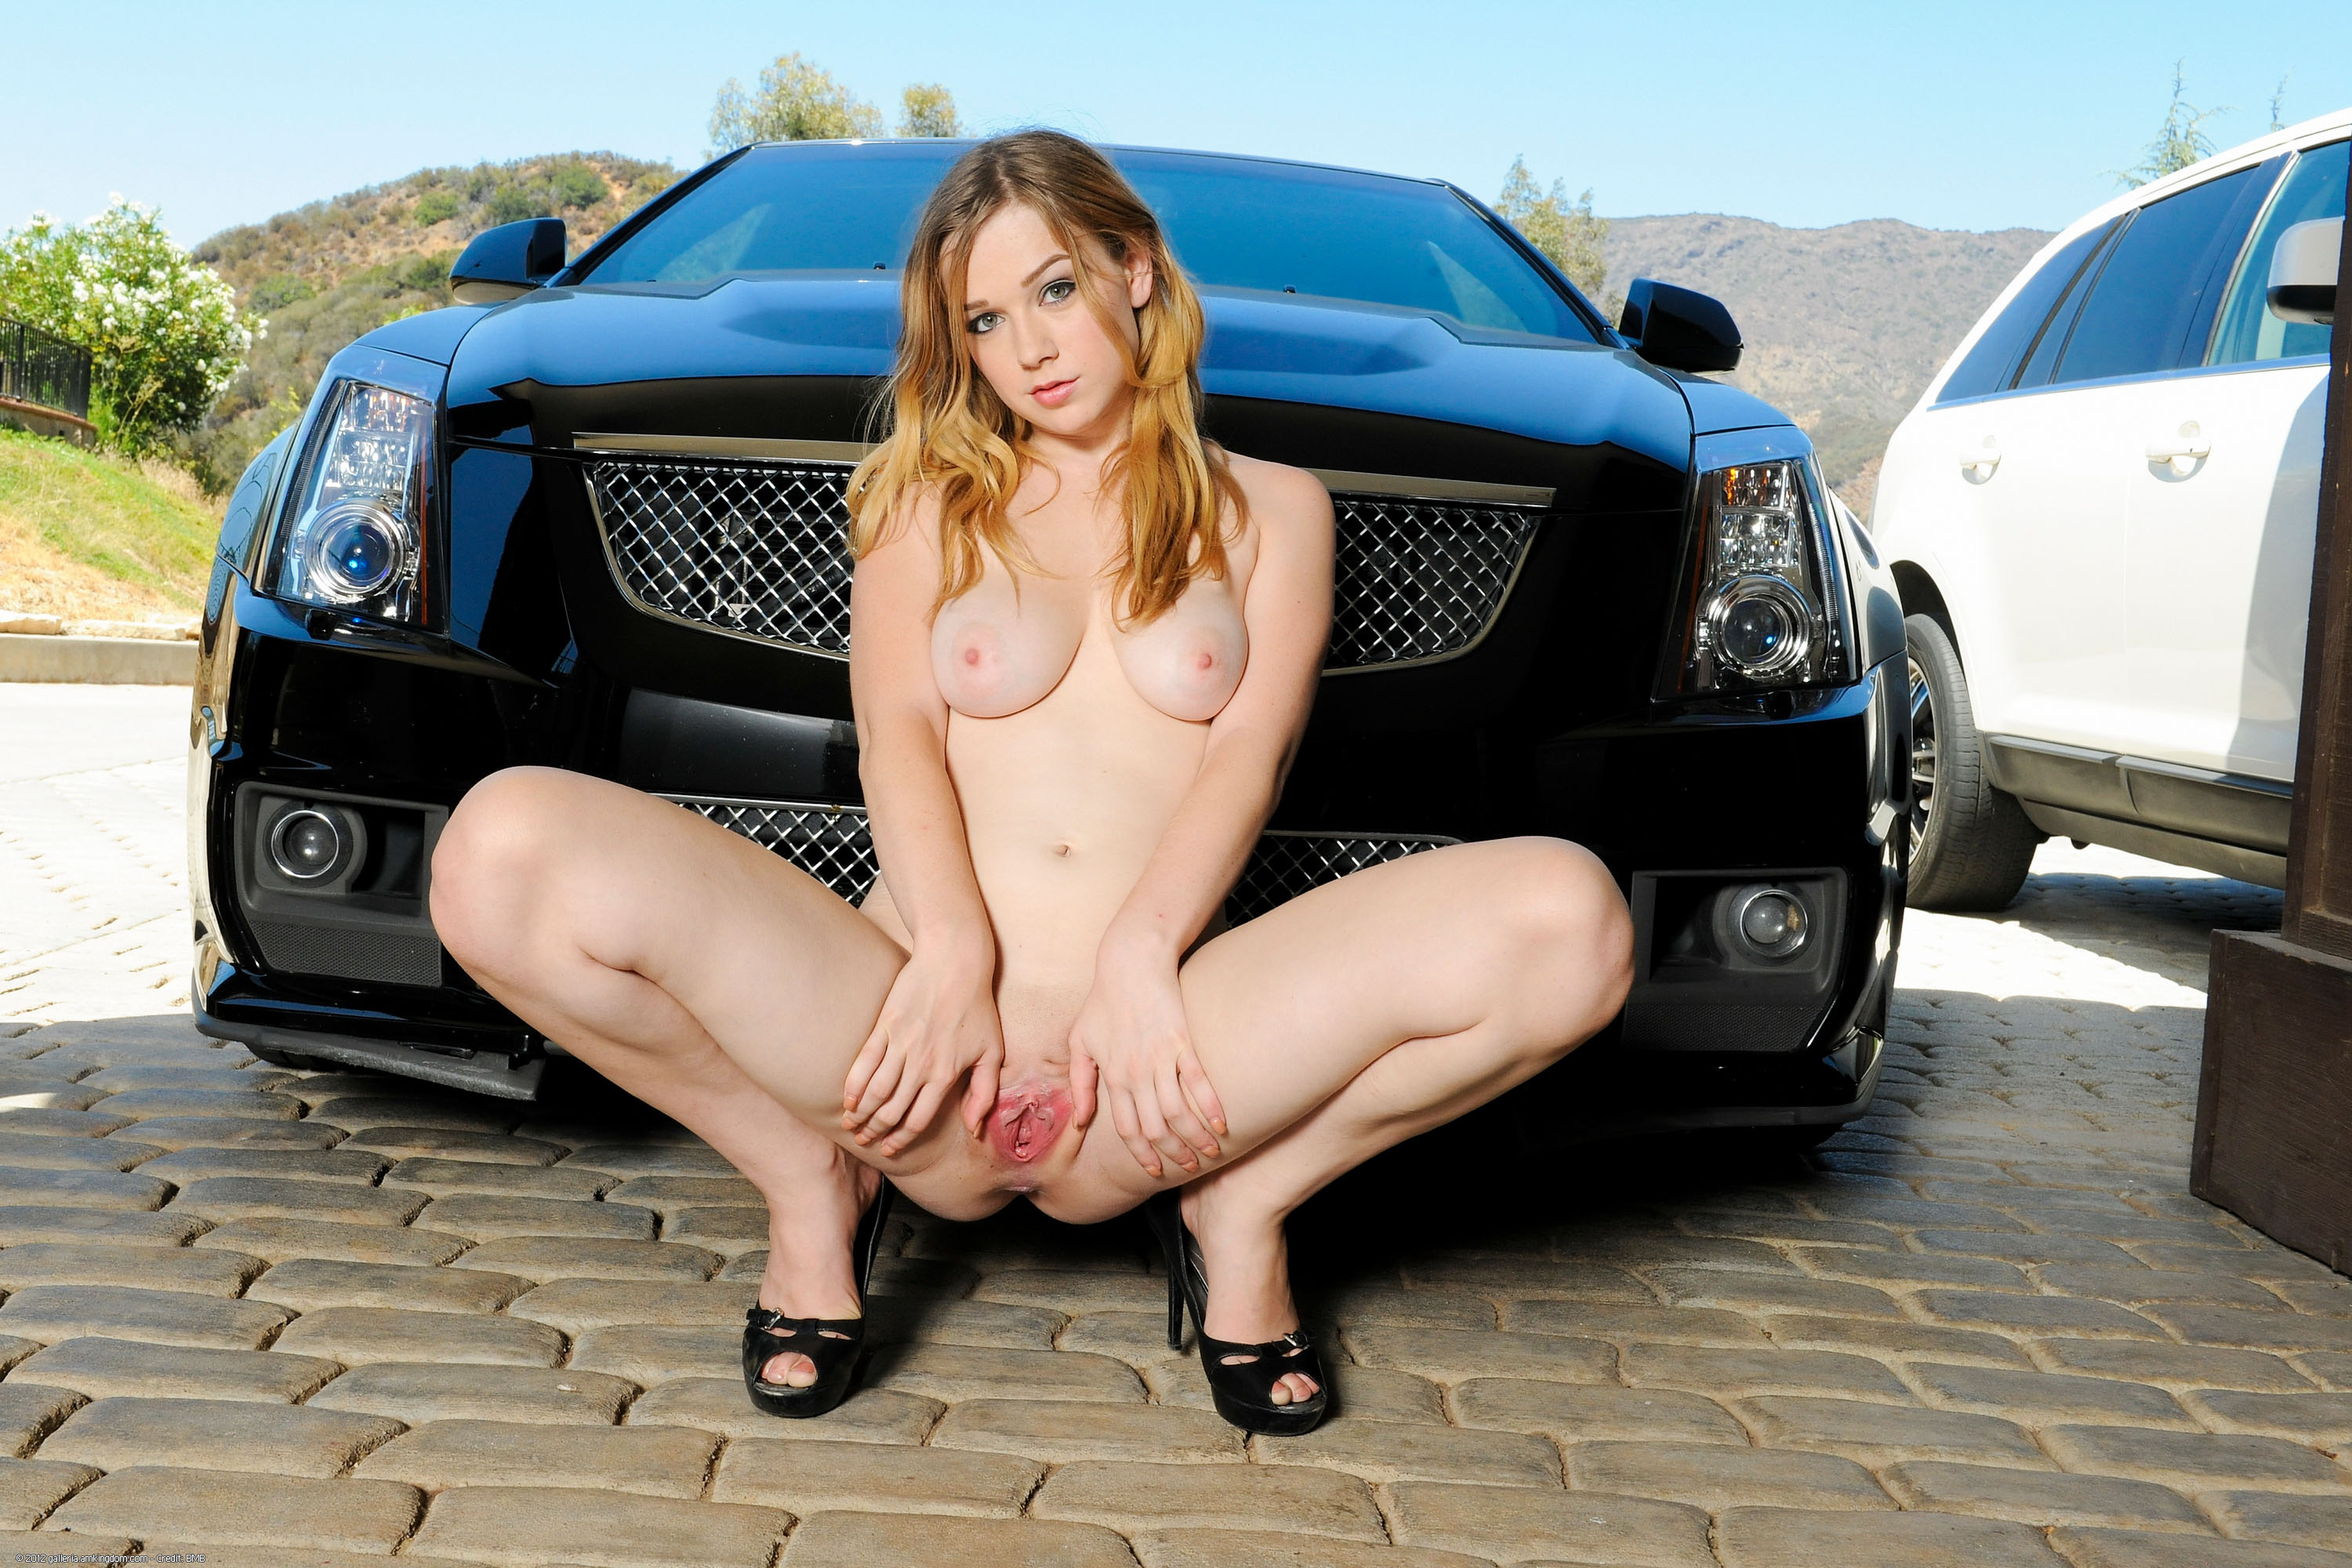 Wallpaper Alaina Fox, Sexy, Nude, Pussy, Car, Boobs -3861